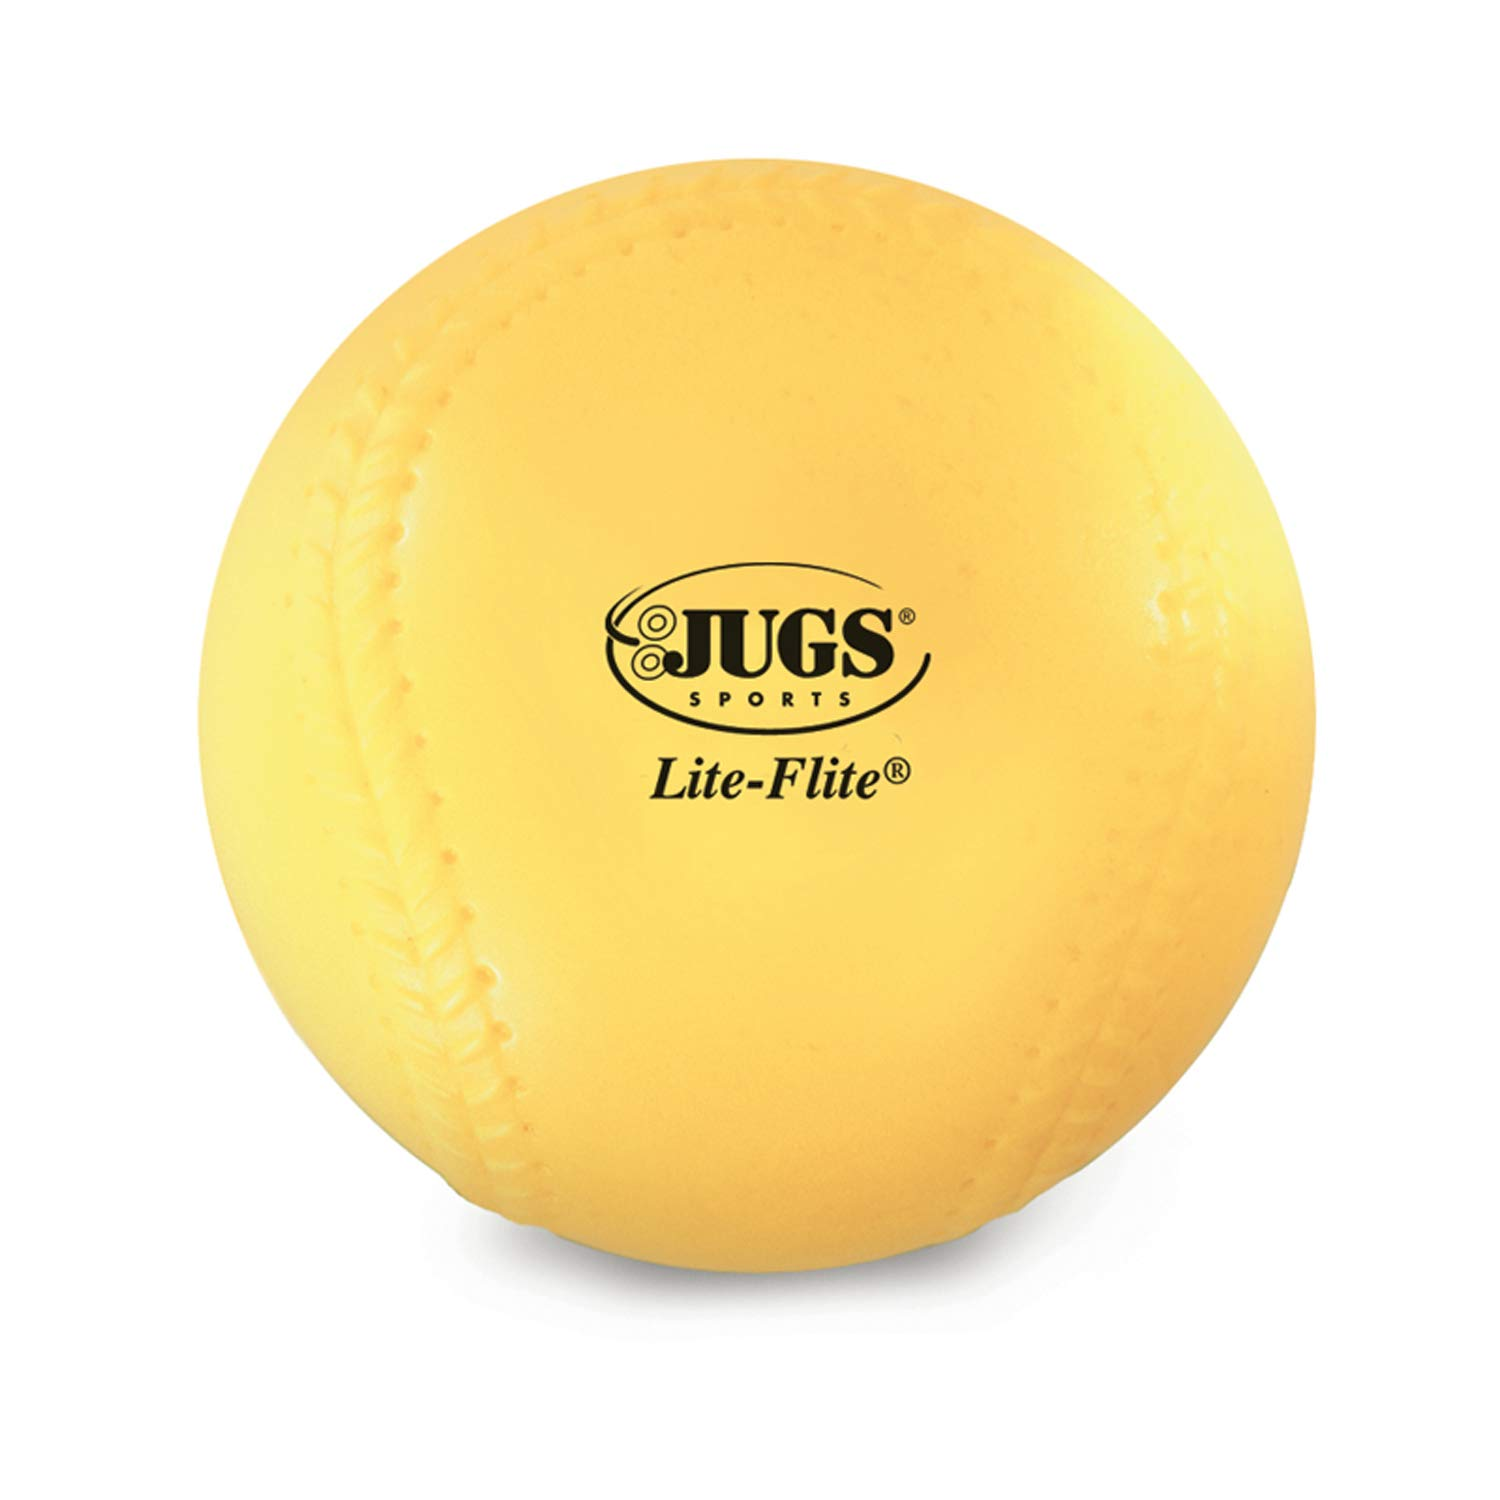 "Jugs Lite-Flite Baseballs (One Dozen) , Optic Yellow , 9-inch                Jugs Toss Machine                Jugs T - Pro Style Batting Tee, Will Not Tip Over, 24"" - 46"" Adjustment Range for High and Low Tee Drills, Patented Grip-N-Go Handle, Always-Feel-The-Ball Flexible Top, 1-Year Guarantee                Jugs Sting-Free Dimpled Softballs (One Dozen)"